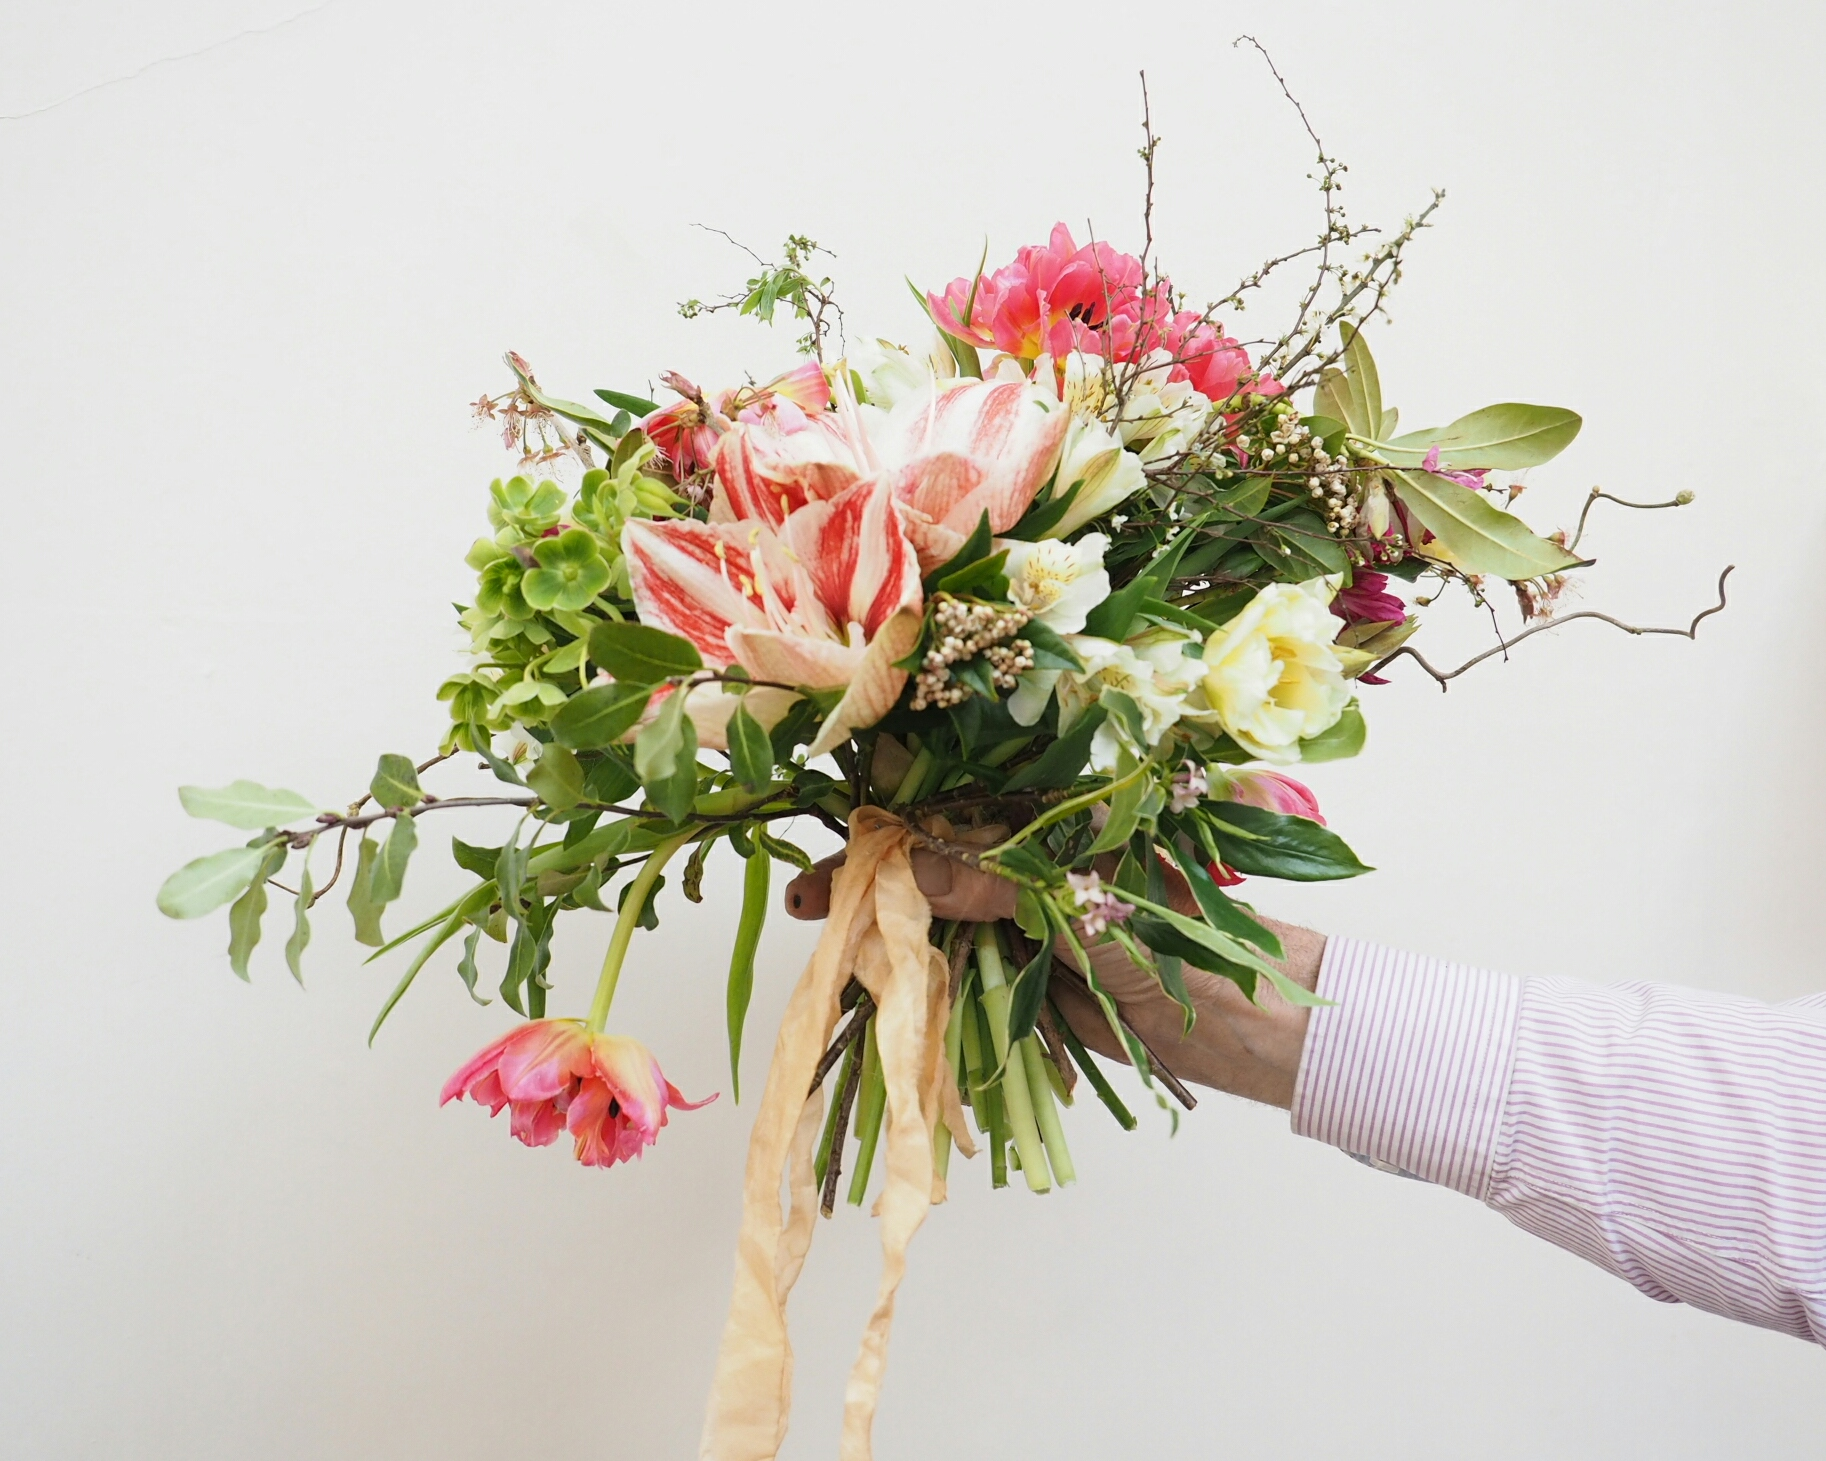 A candy-striped Amaryllis is the stunning focal point of this spring bridal bouquet.